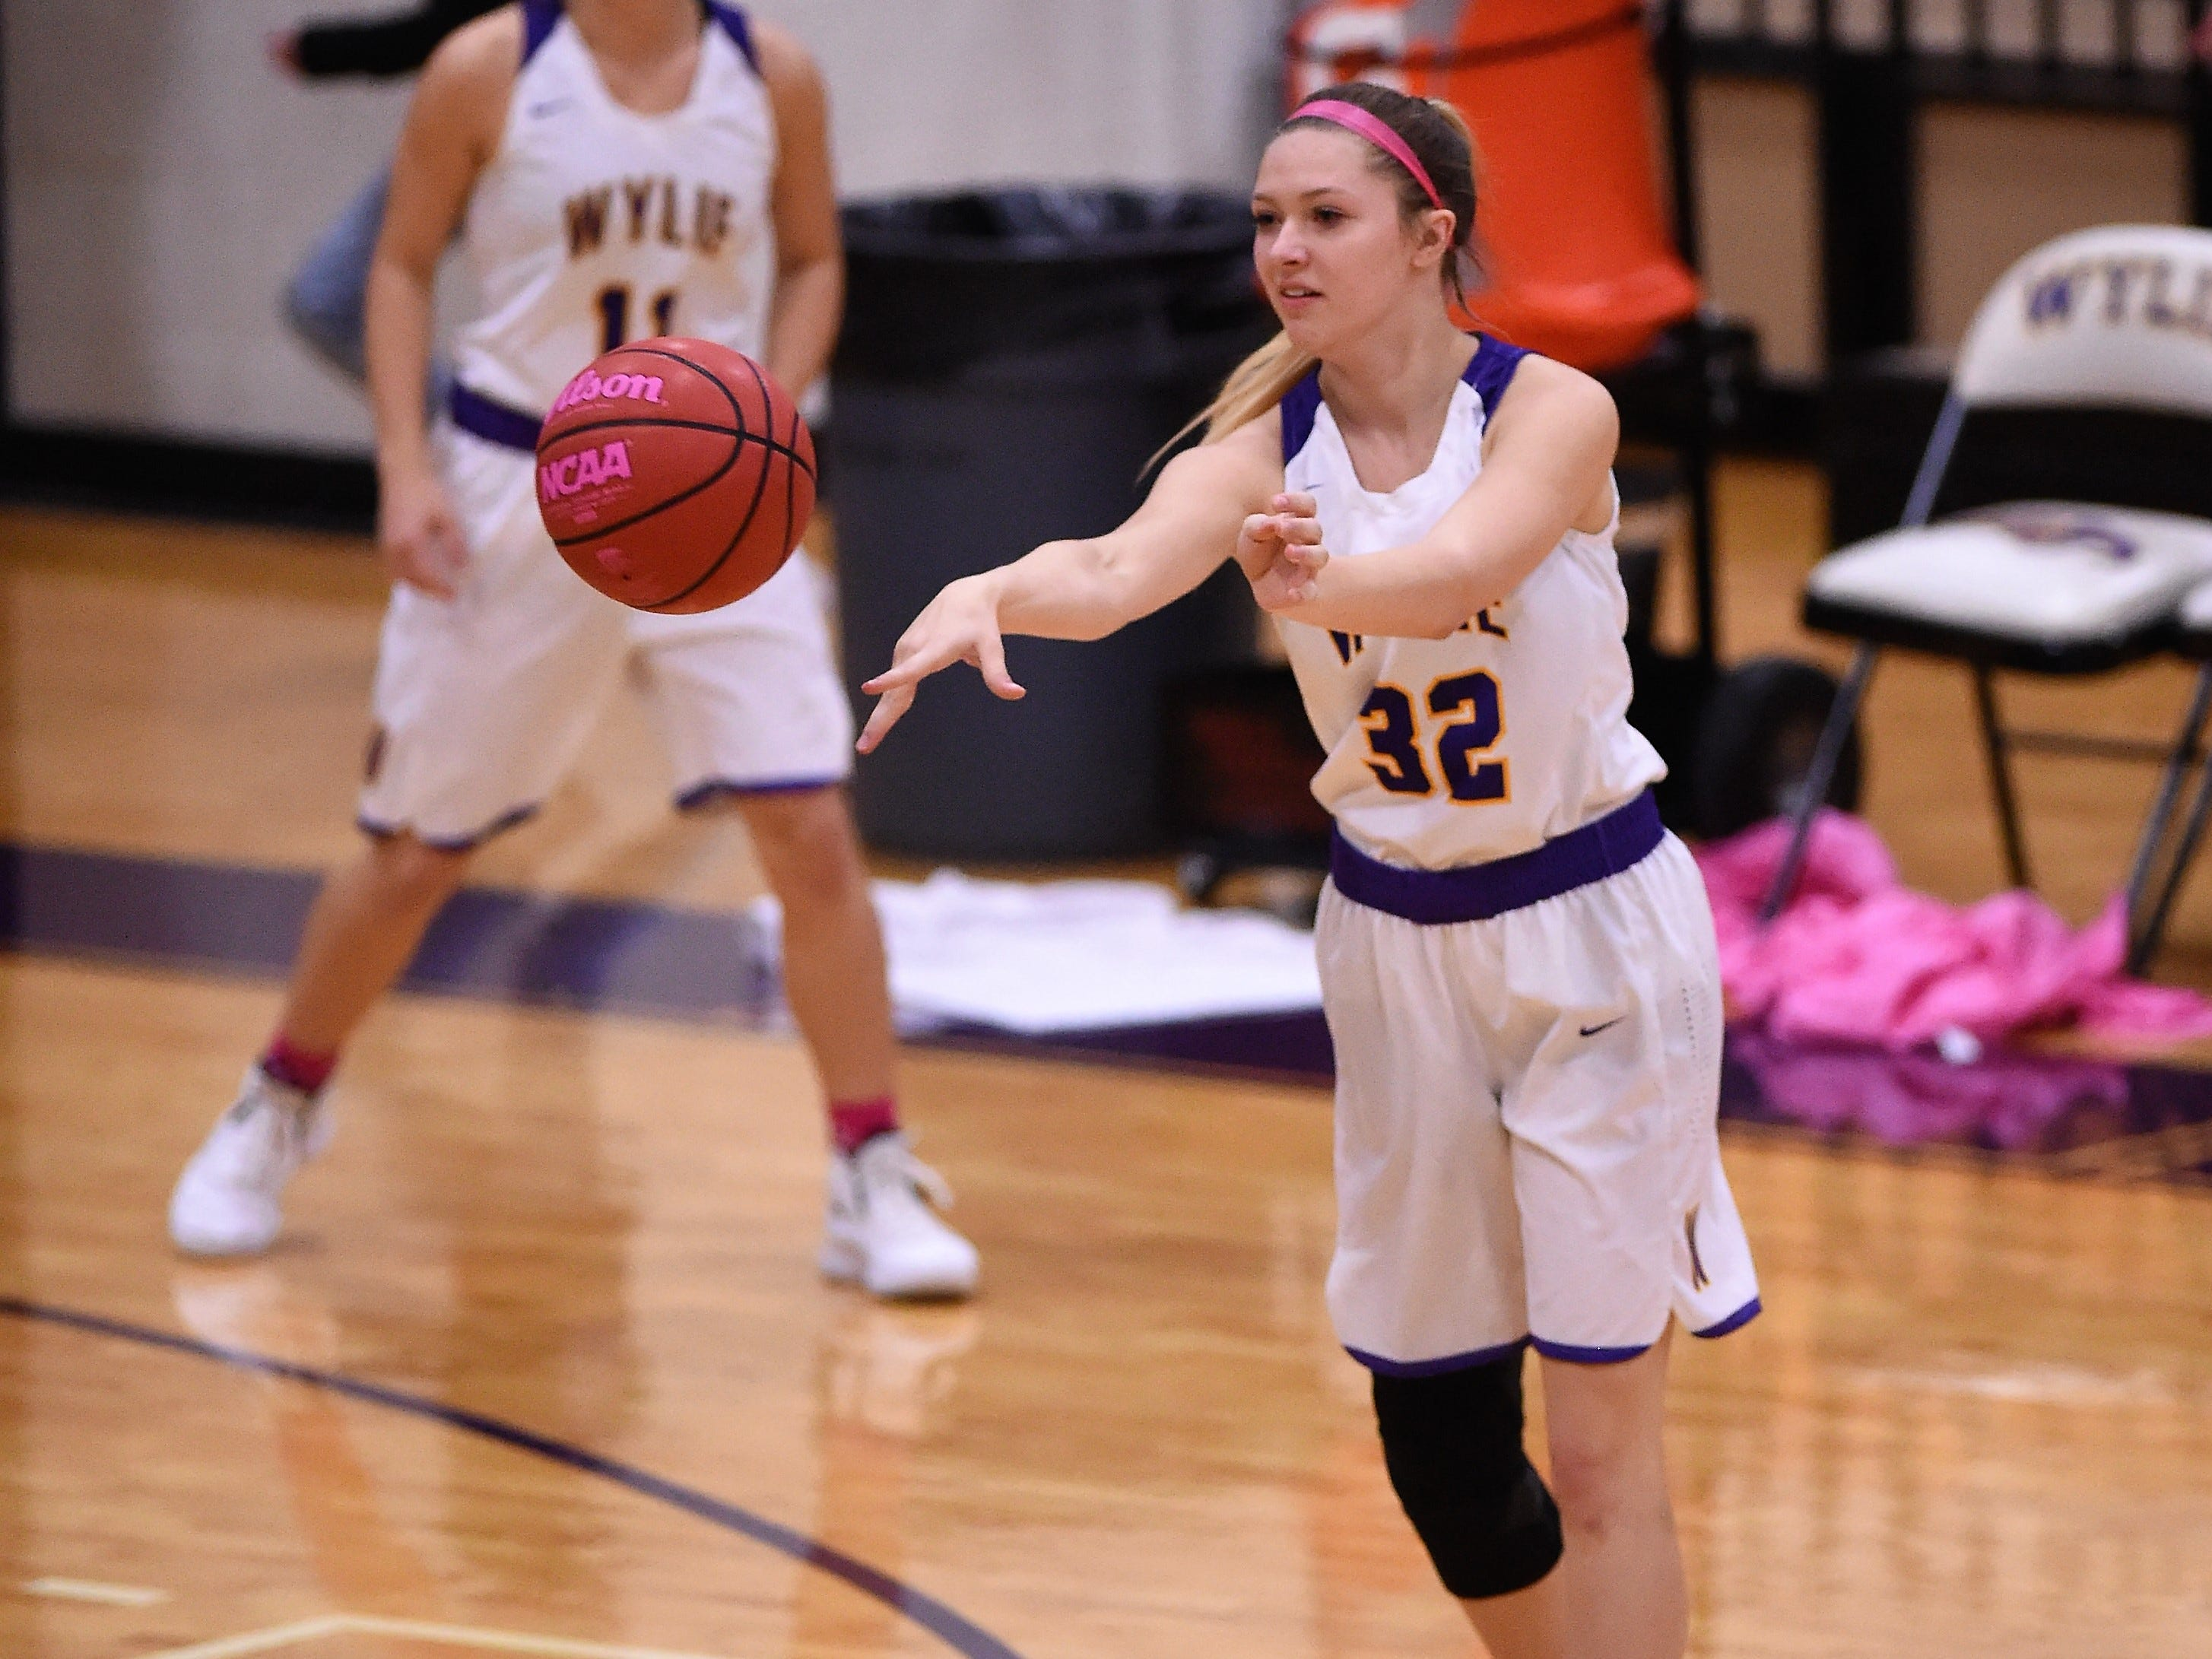 Wylie guard Skylar Williams (32) passes the ball against Merkel in the Coaches vs. Cancer Pink Out game on Tuesday, Dec. 4, 2018. The Lady Bulldogs won 75-39.